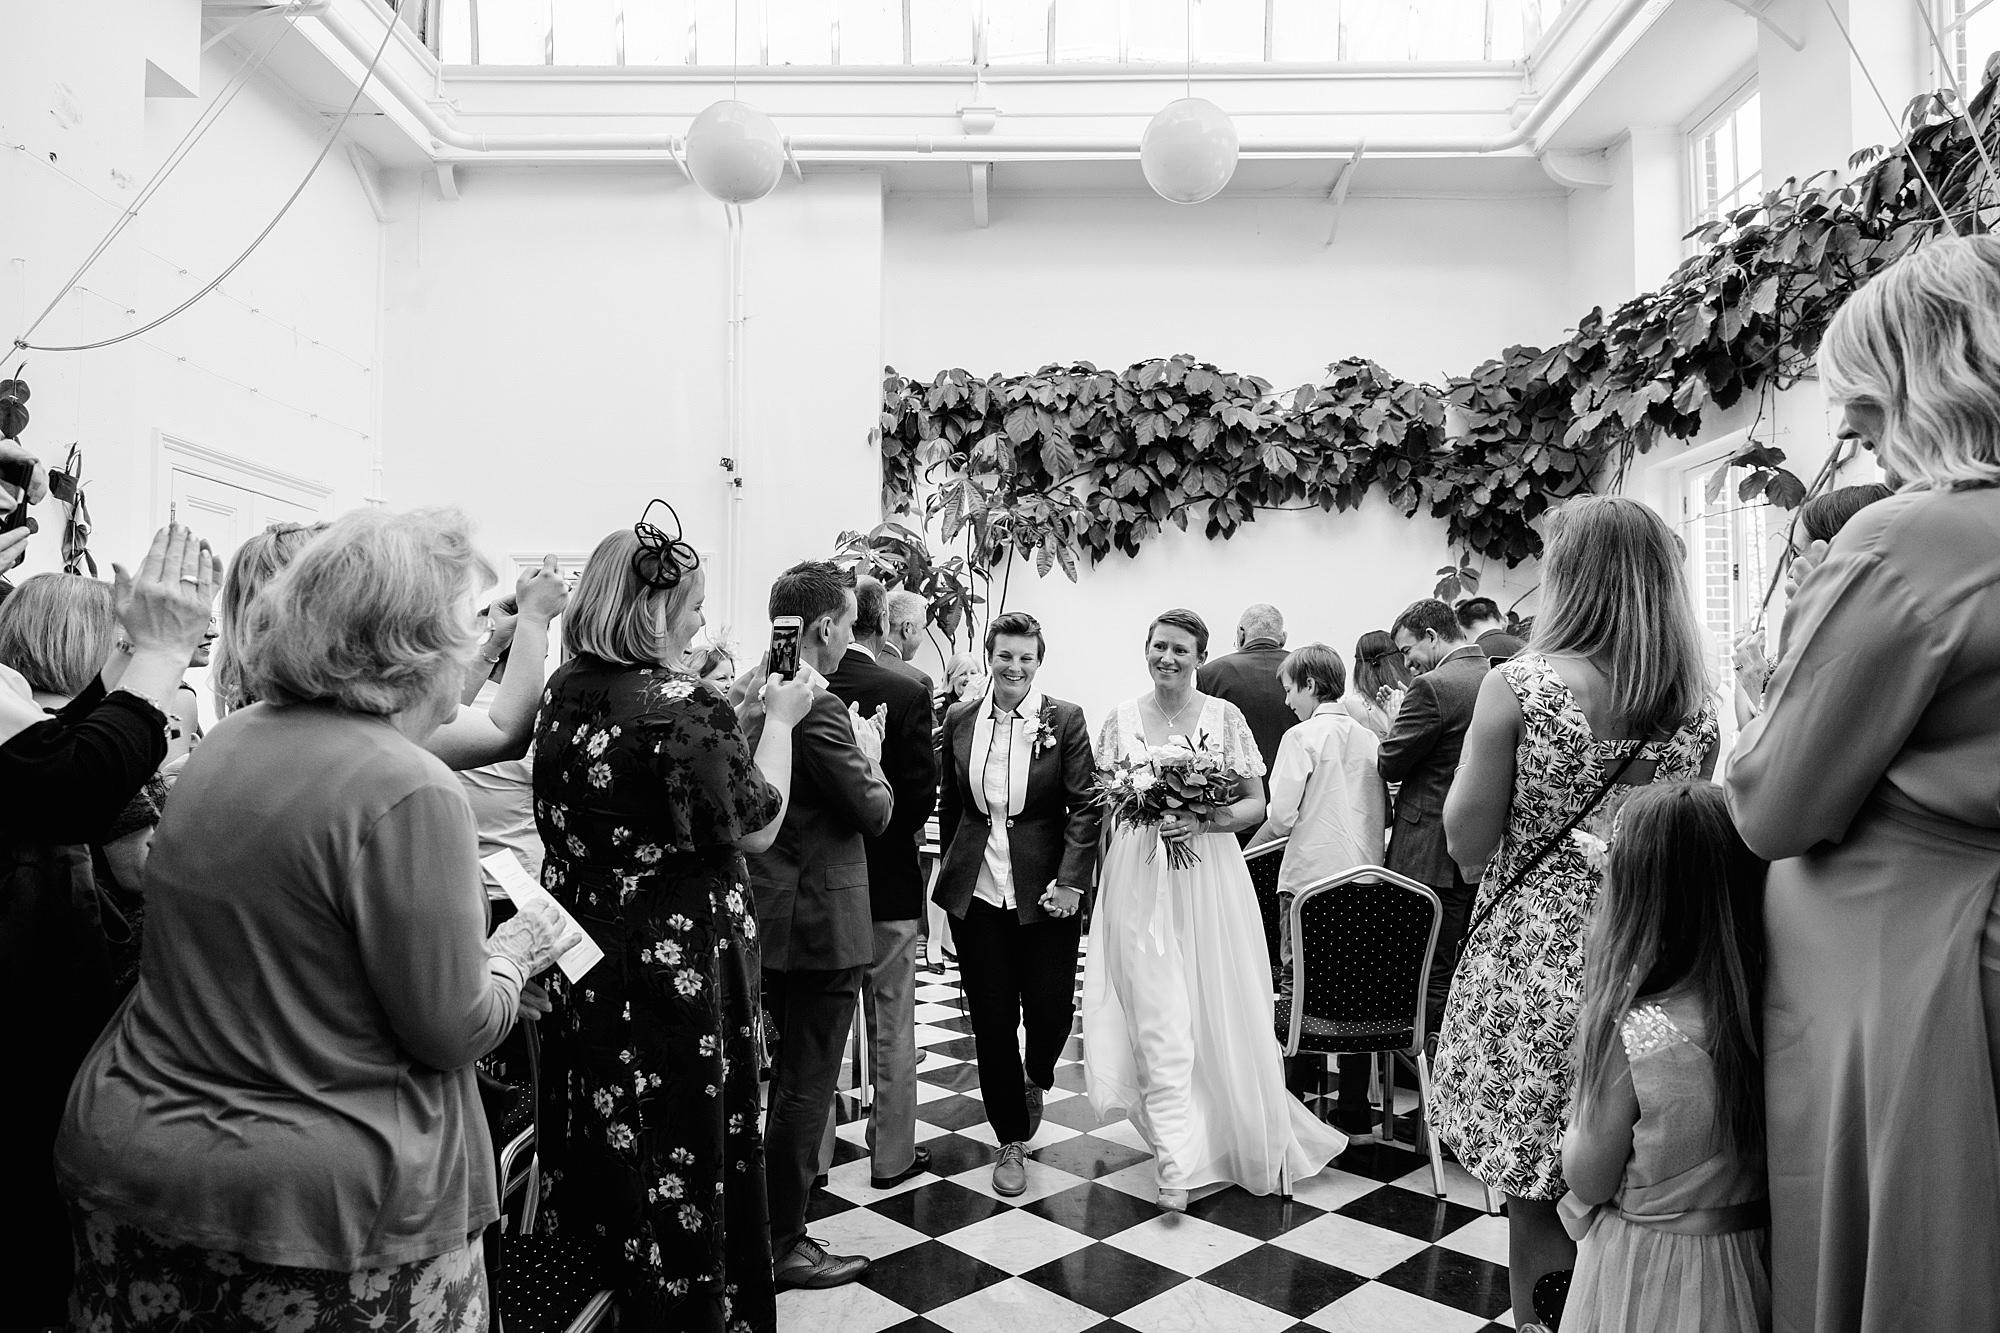 Twickenham wedding photography brides walk back down aisle after wedding ceremony